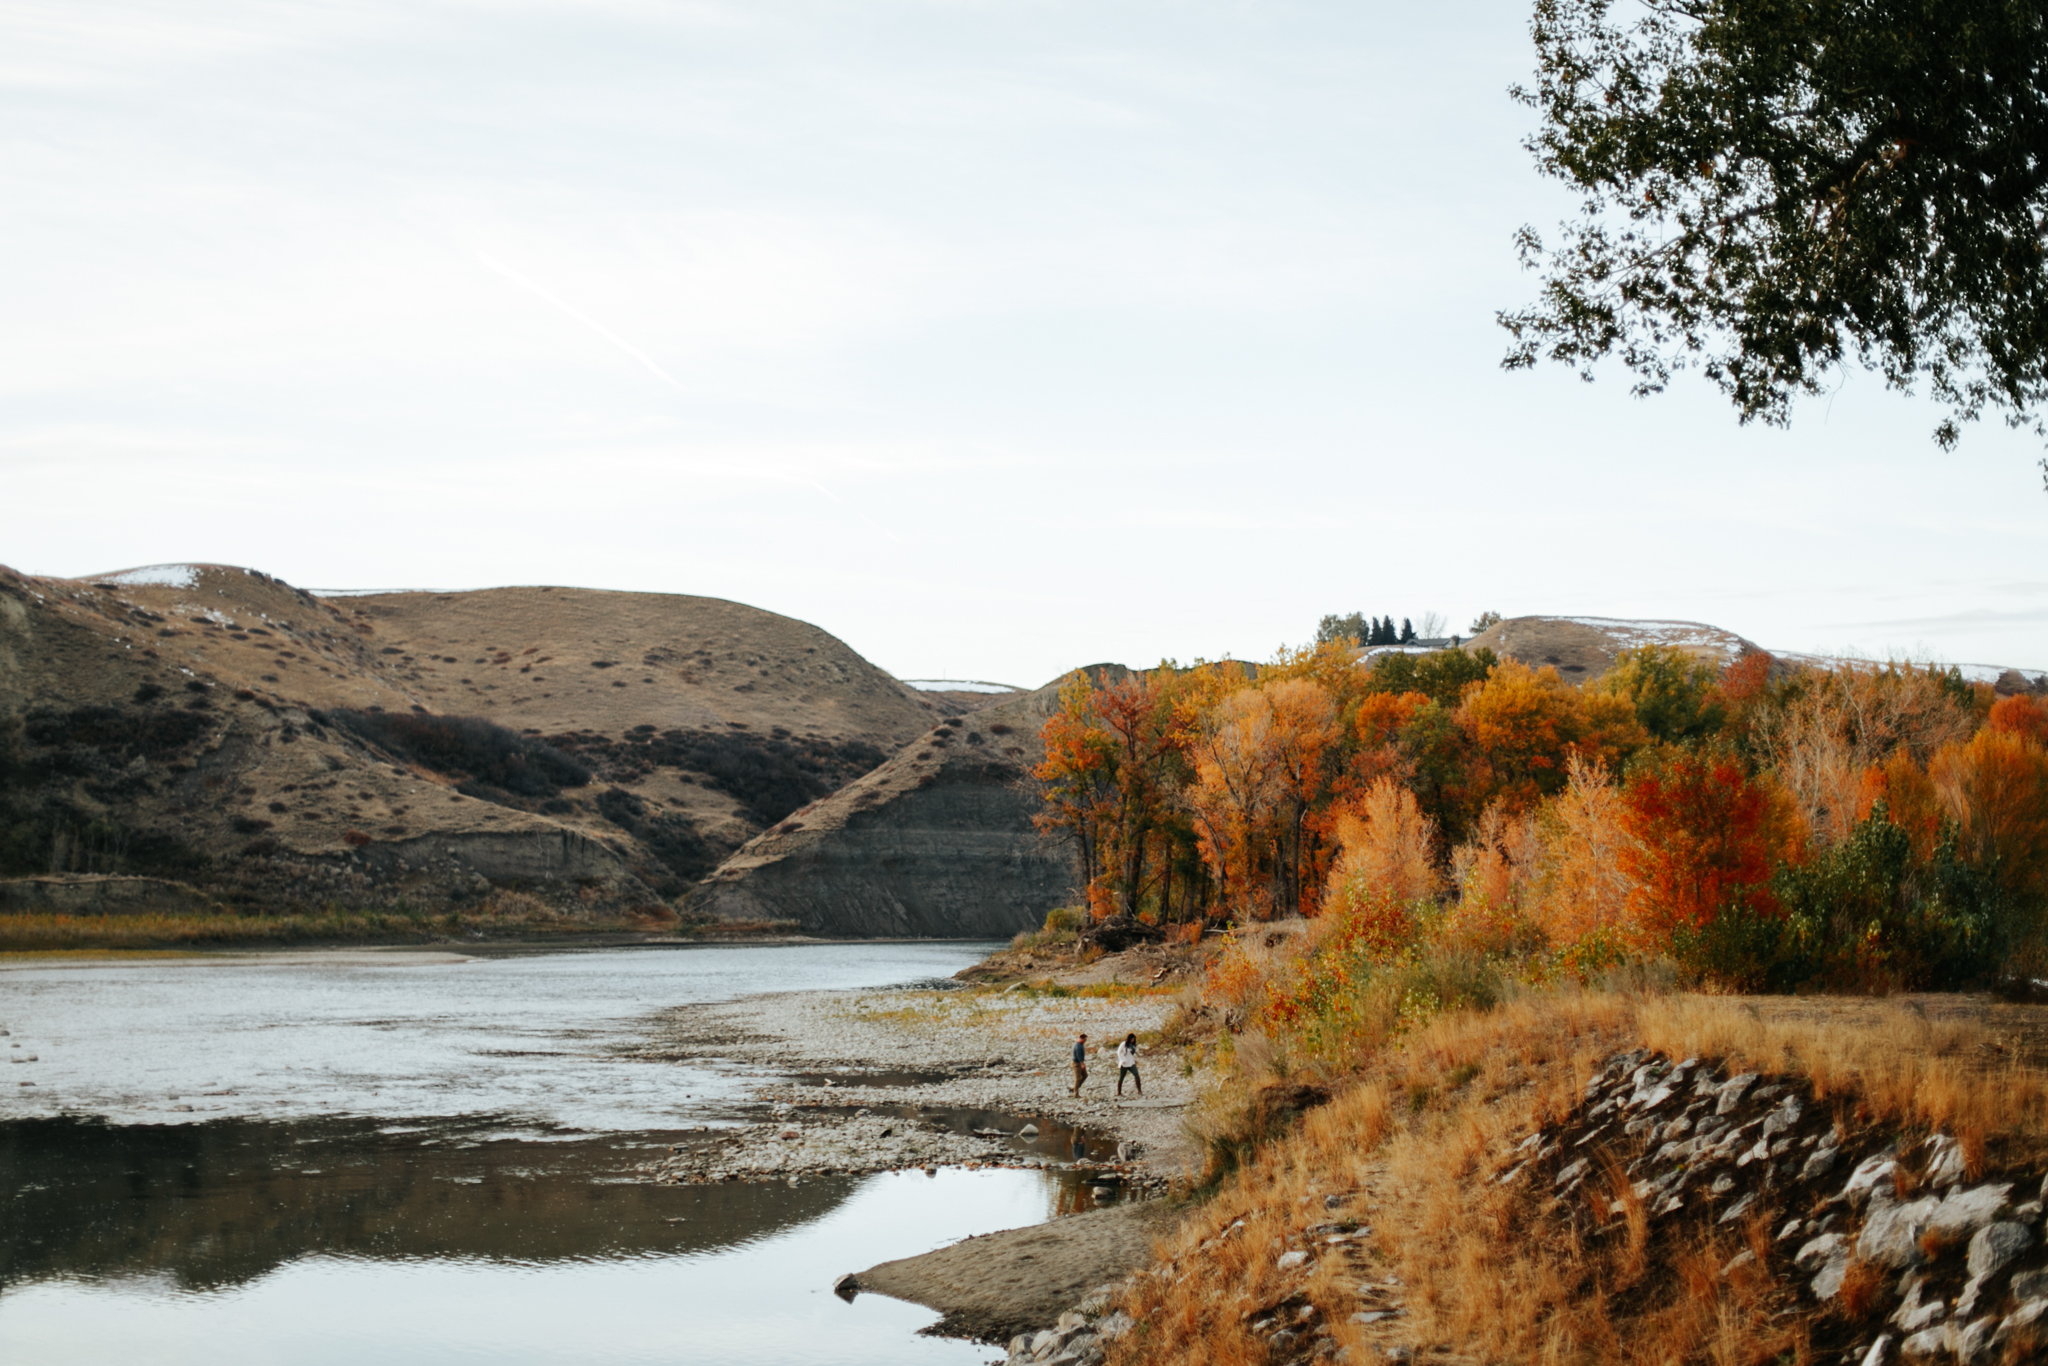 lethbridge-photographer-love-and-be-loved-photography-christy-bryan-fall-autumn-engagement-photo-image-picture-46.jpg